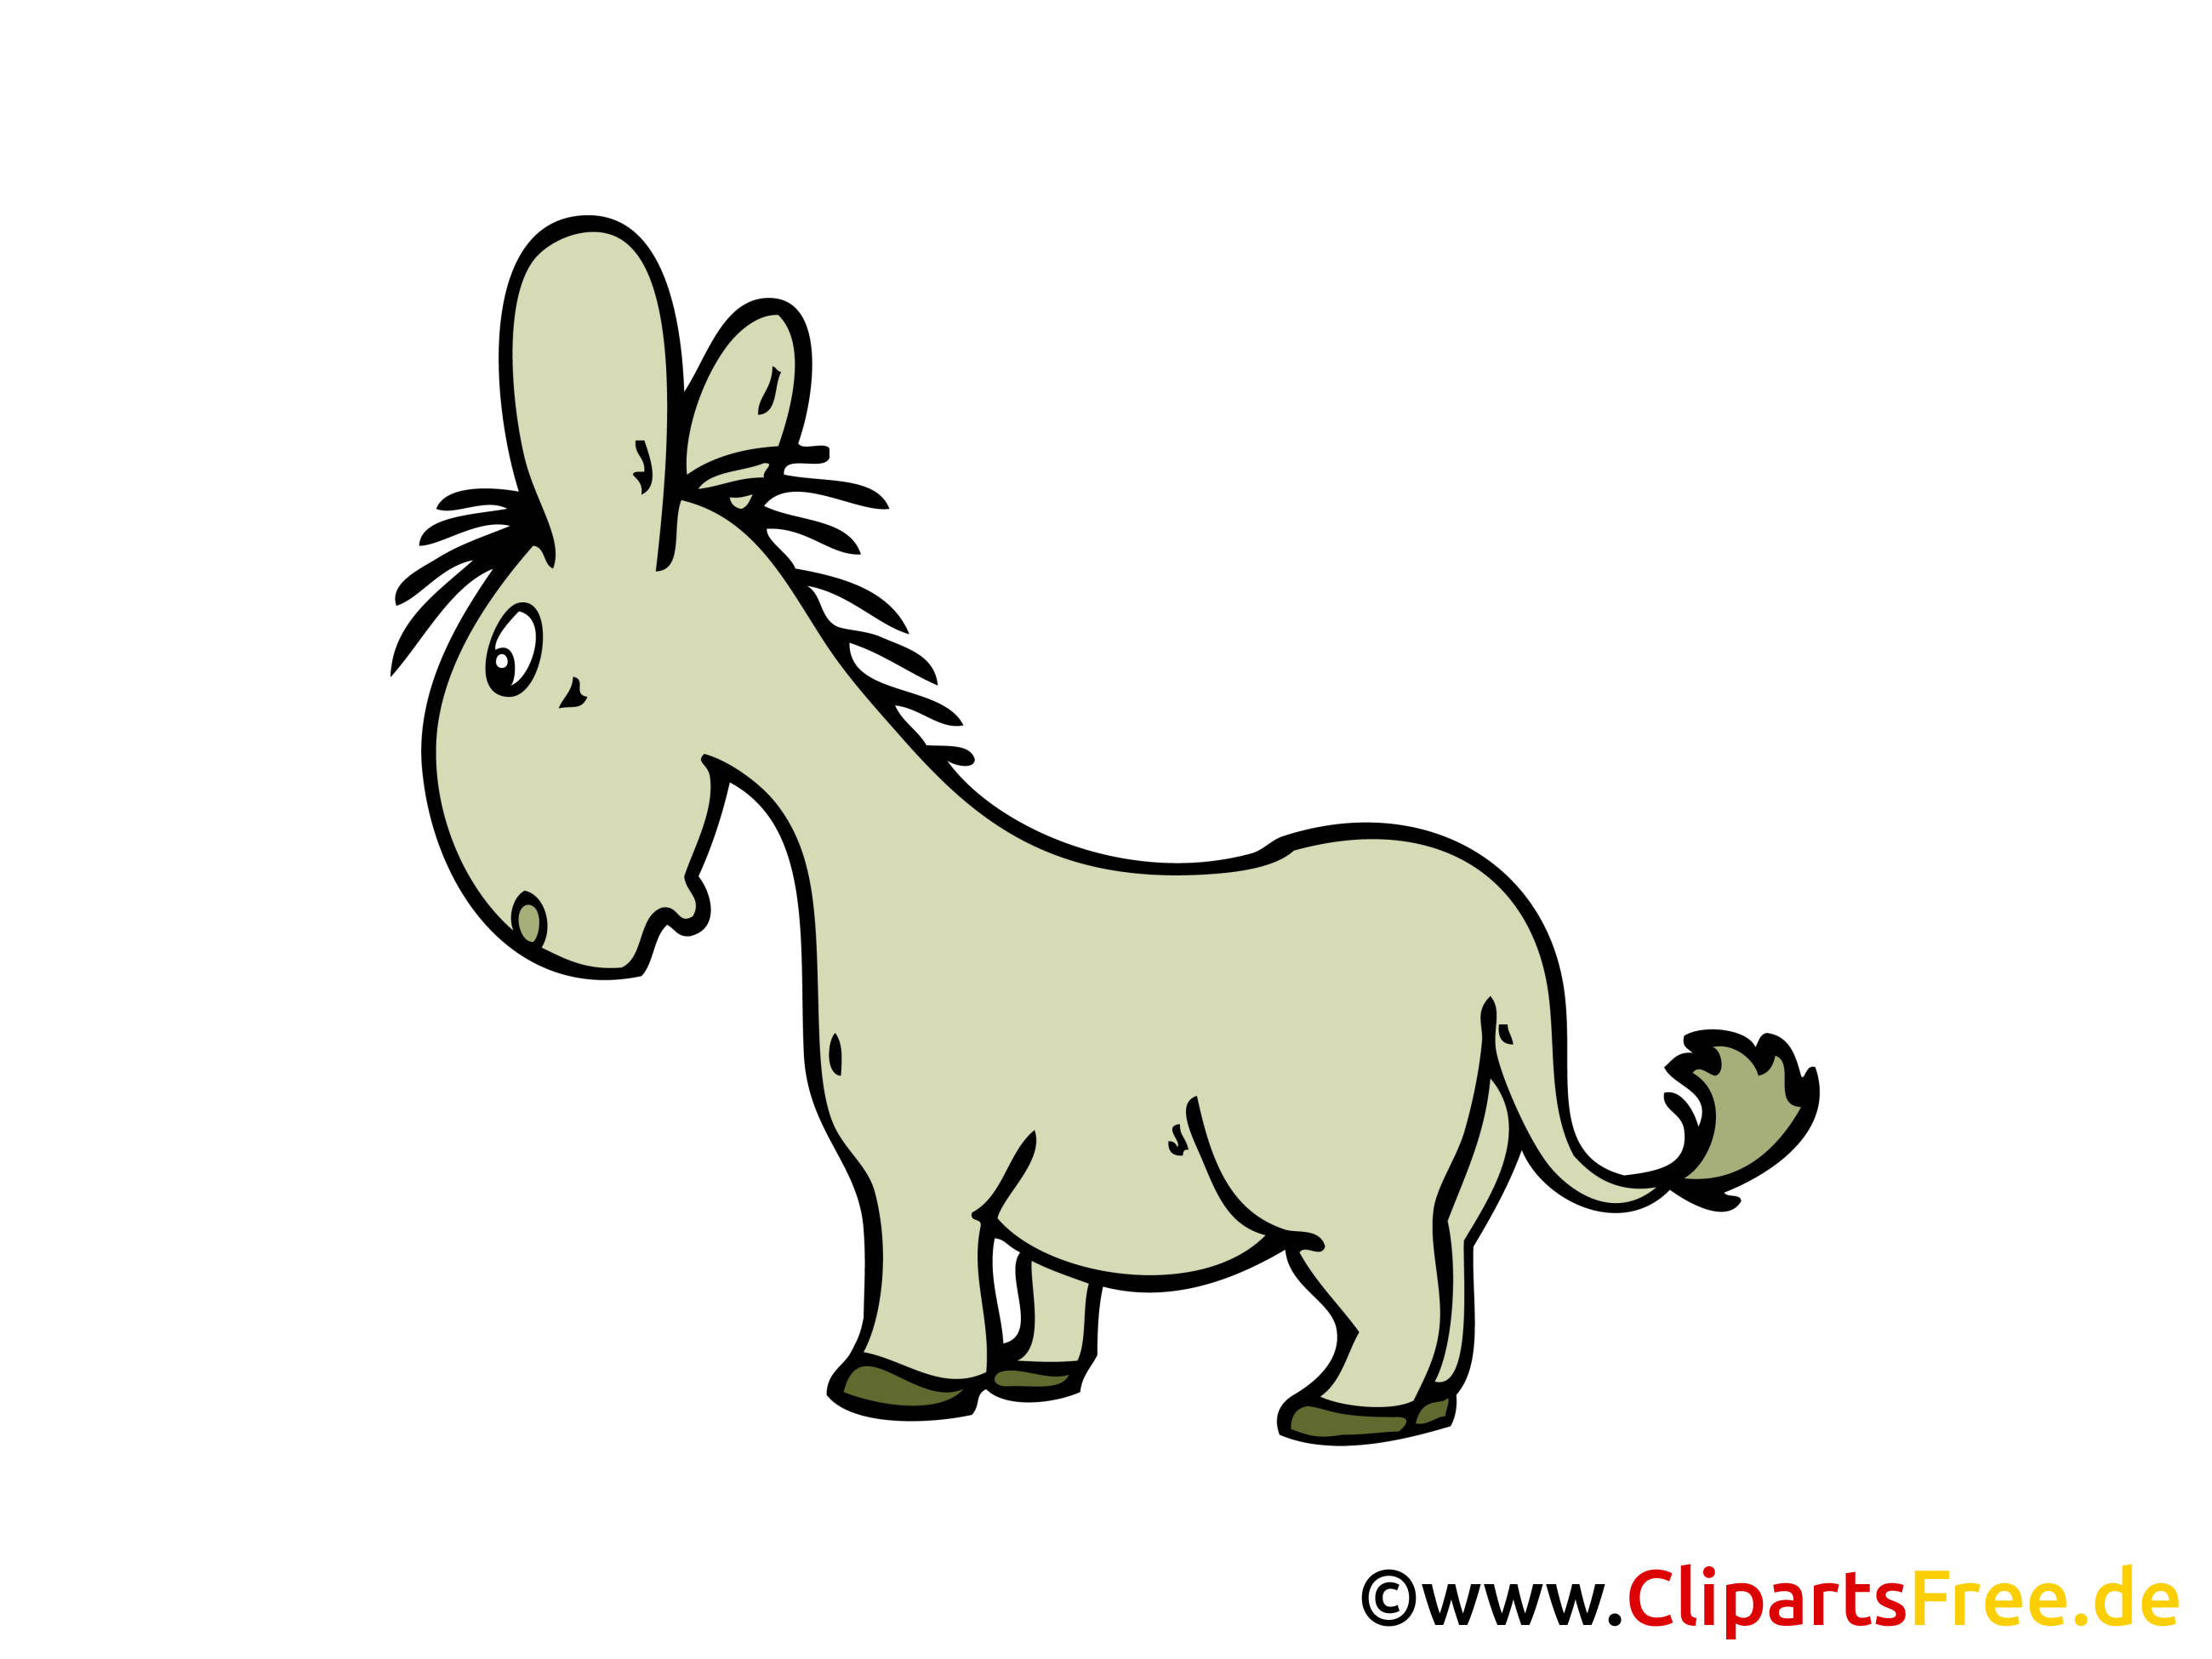 Clipart esel 2 » Clipart Station.